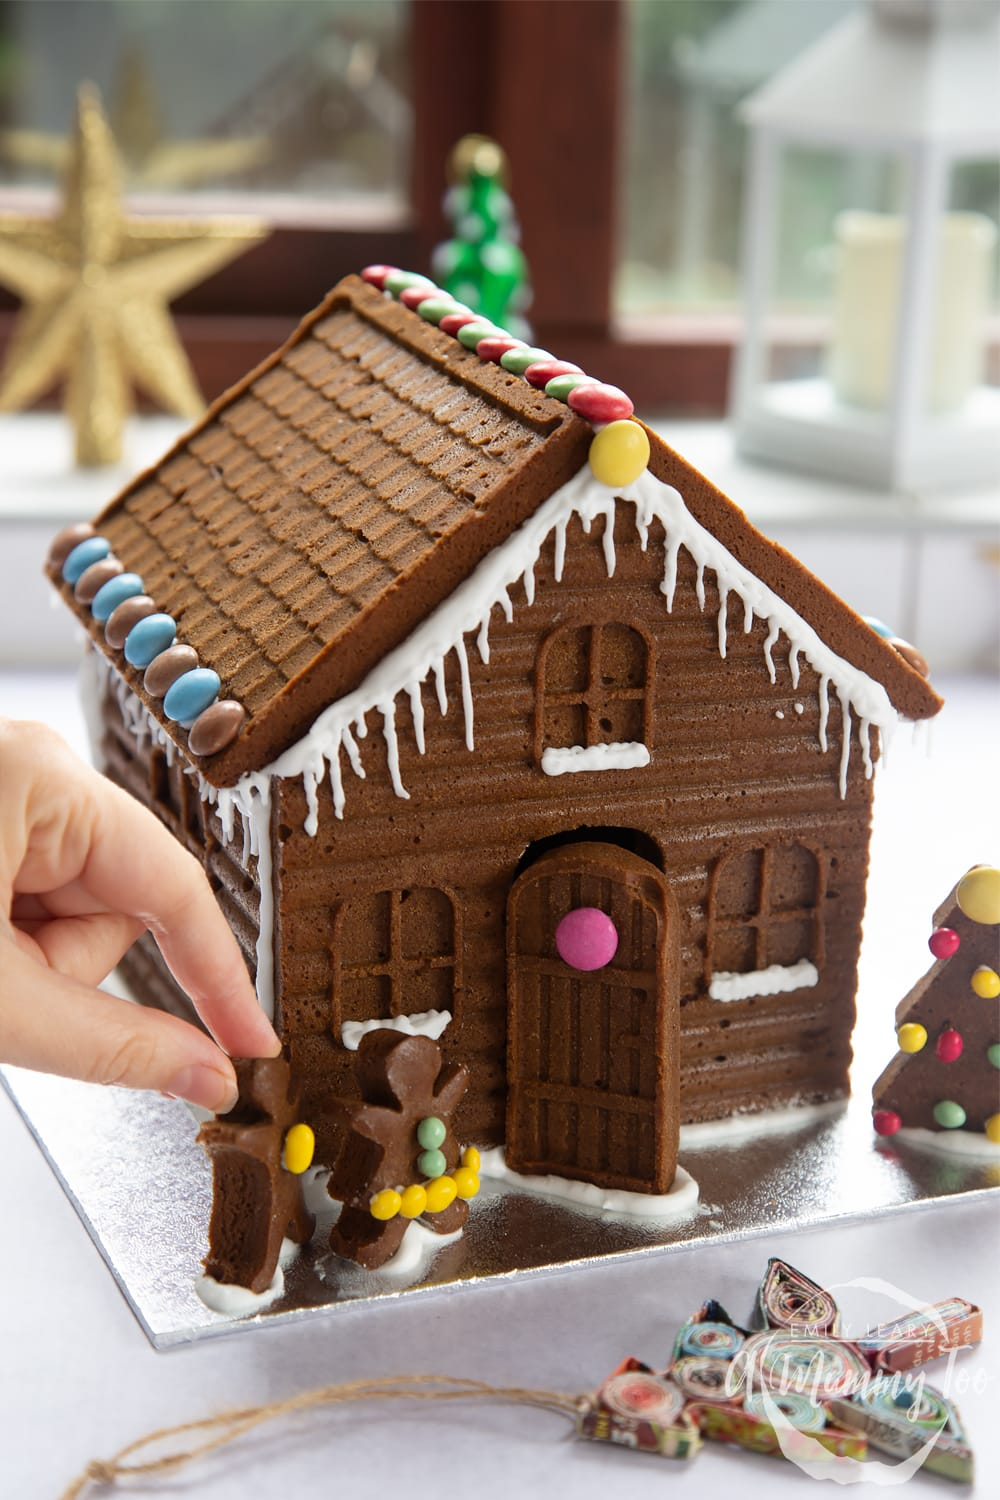 A detailed gingerbread house on a silver board. A hand is reaching in, positioning two gingerbread people in place on the board.